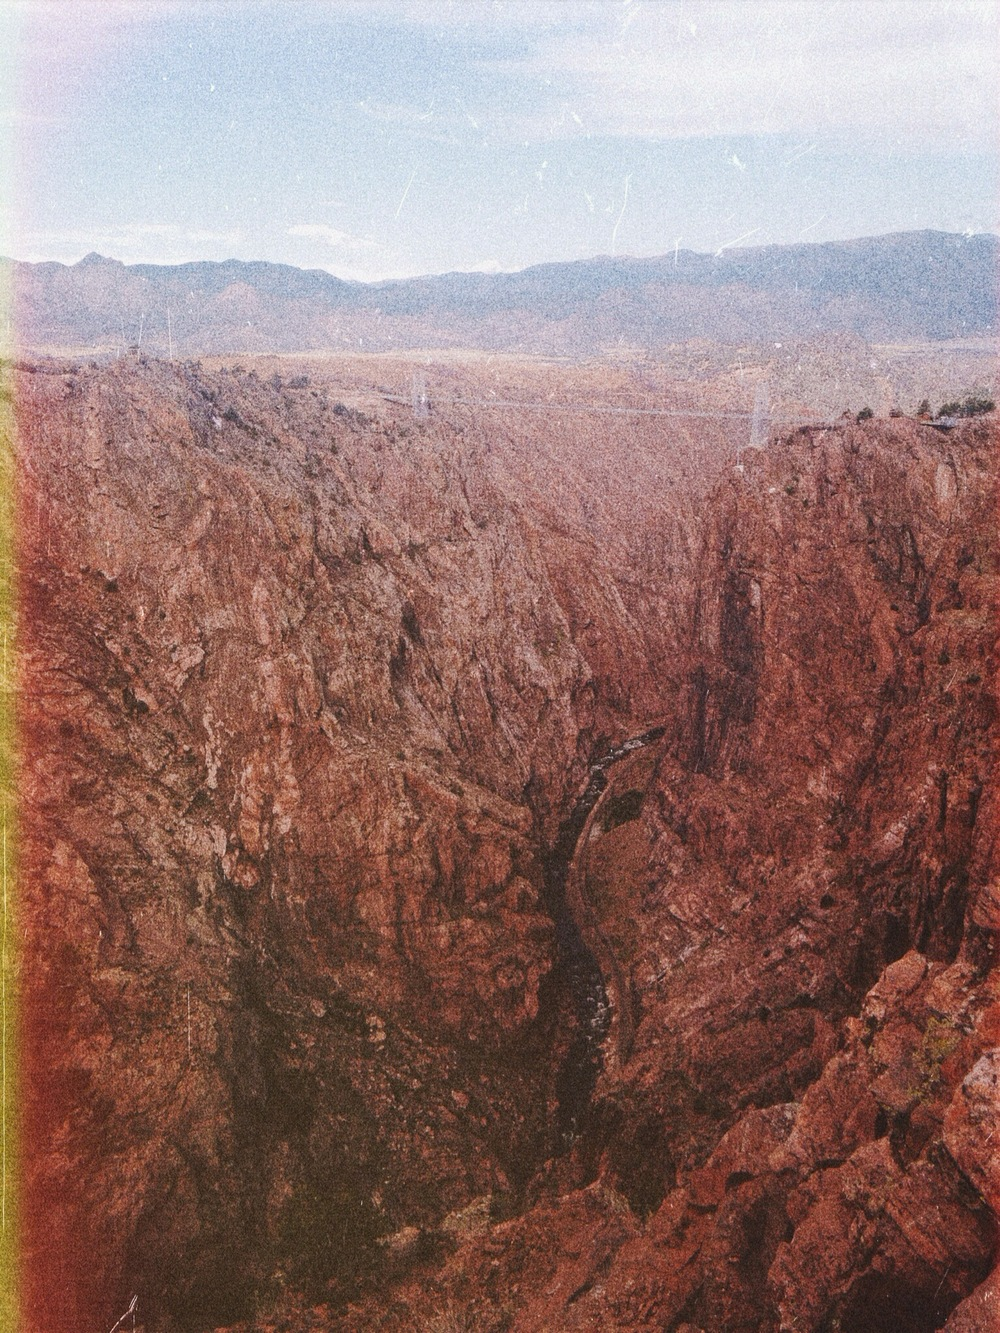 royal gorge / cc: kristen